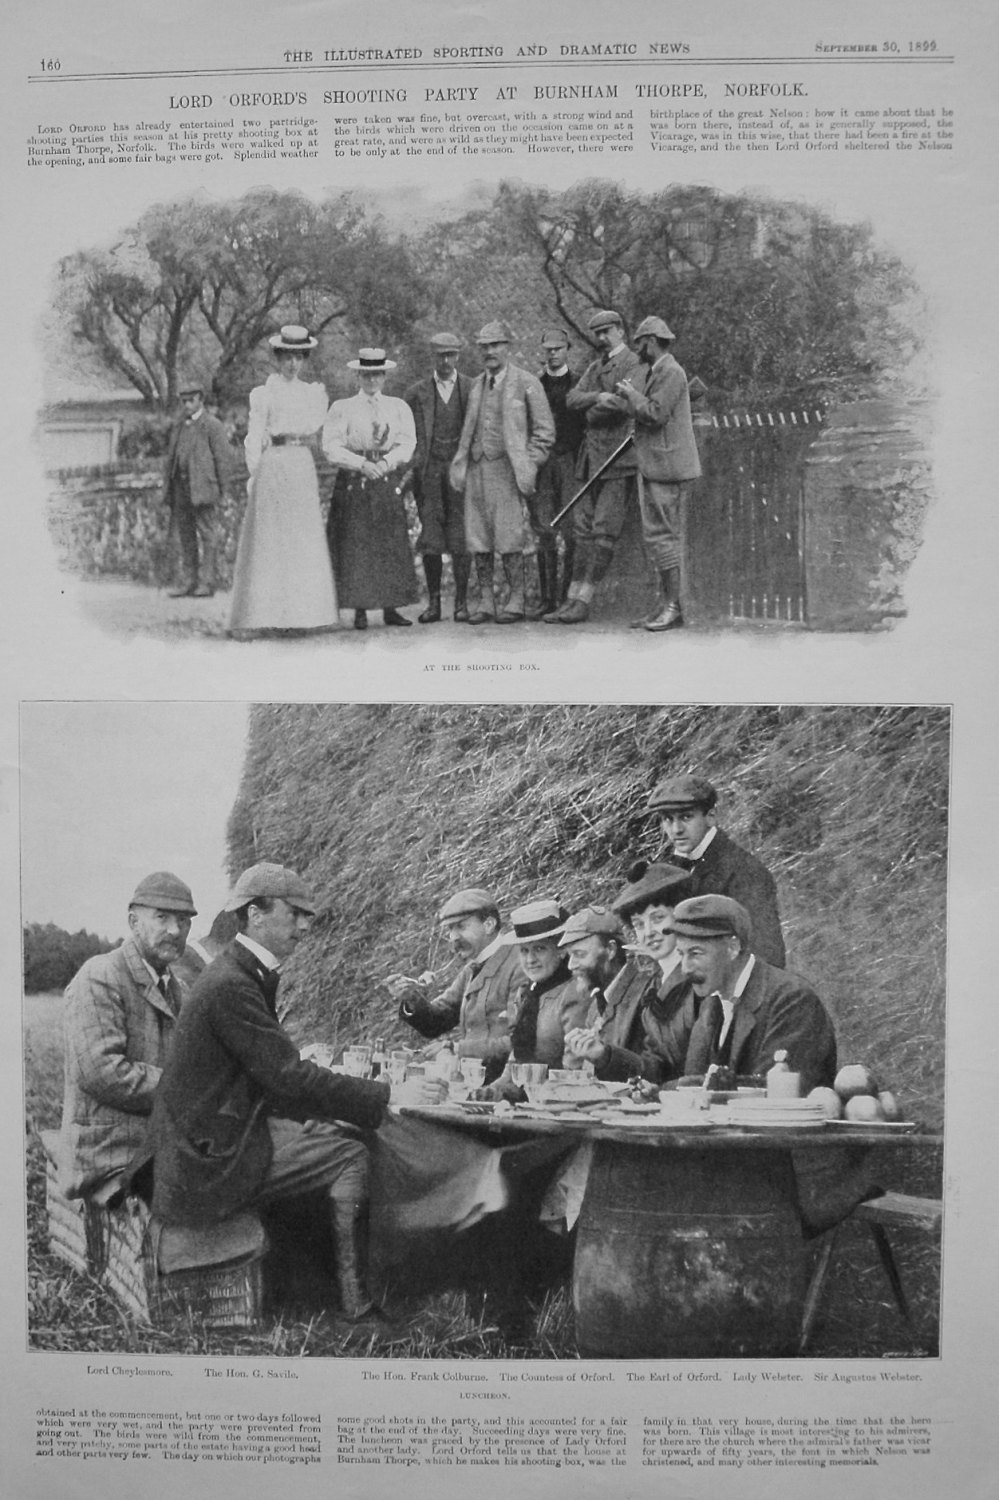 Lord Orford's Shooting Party at Burnham Thorpe, Norfolk. 1899